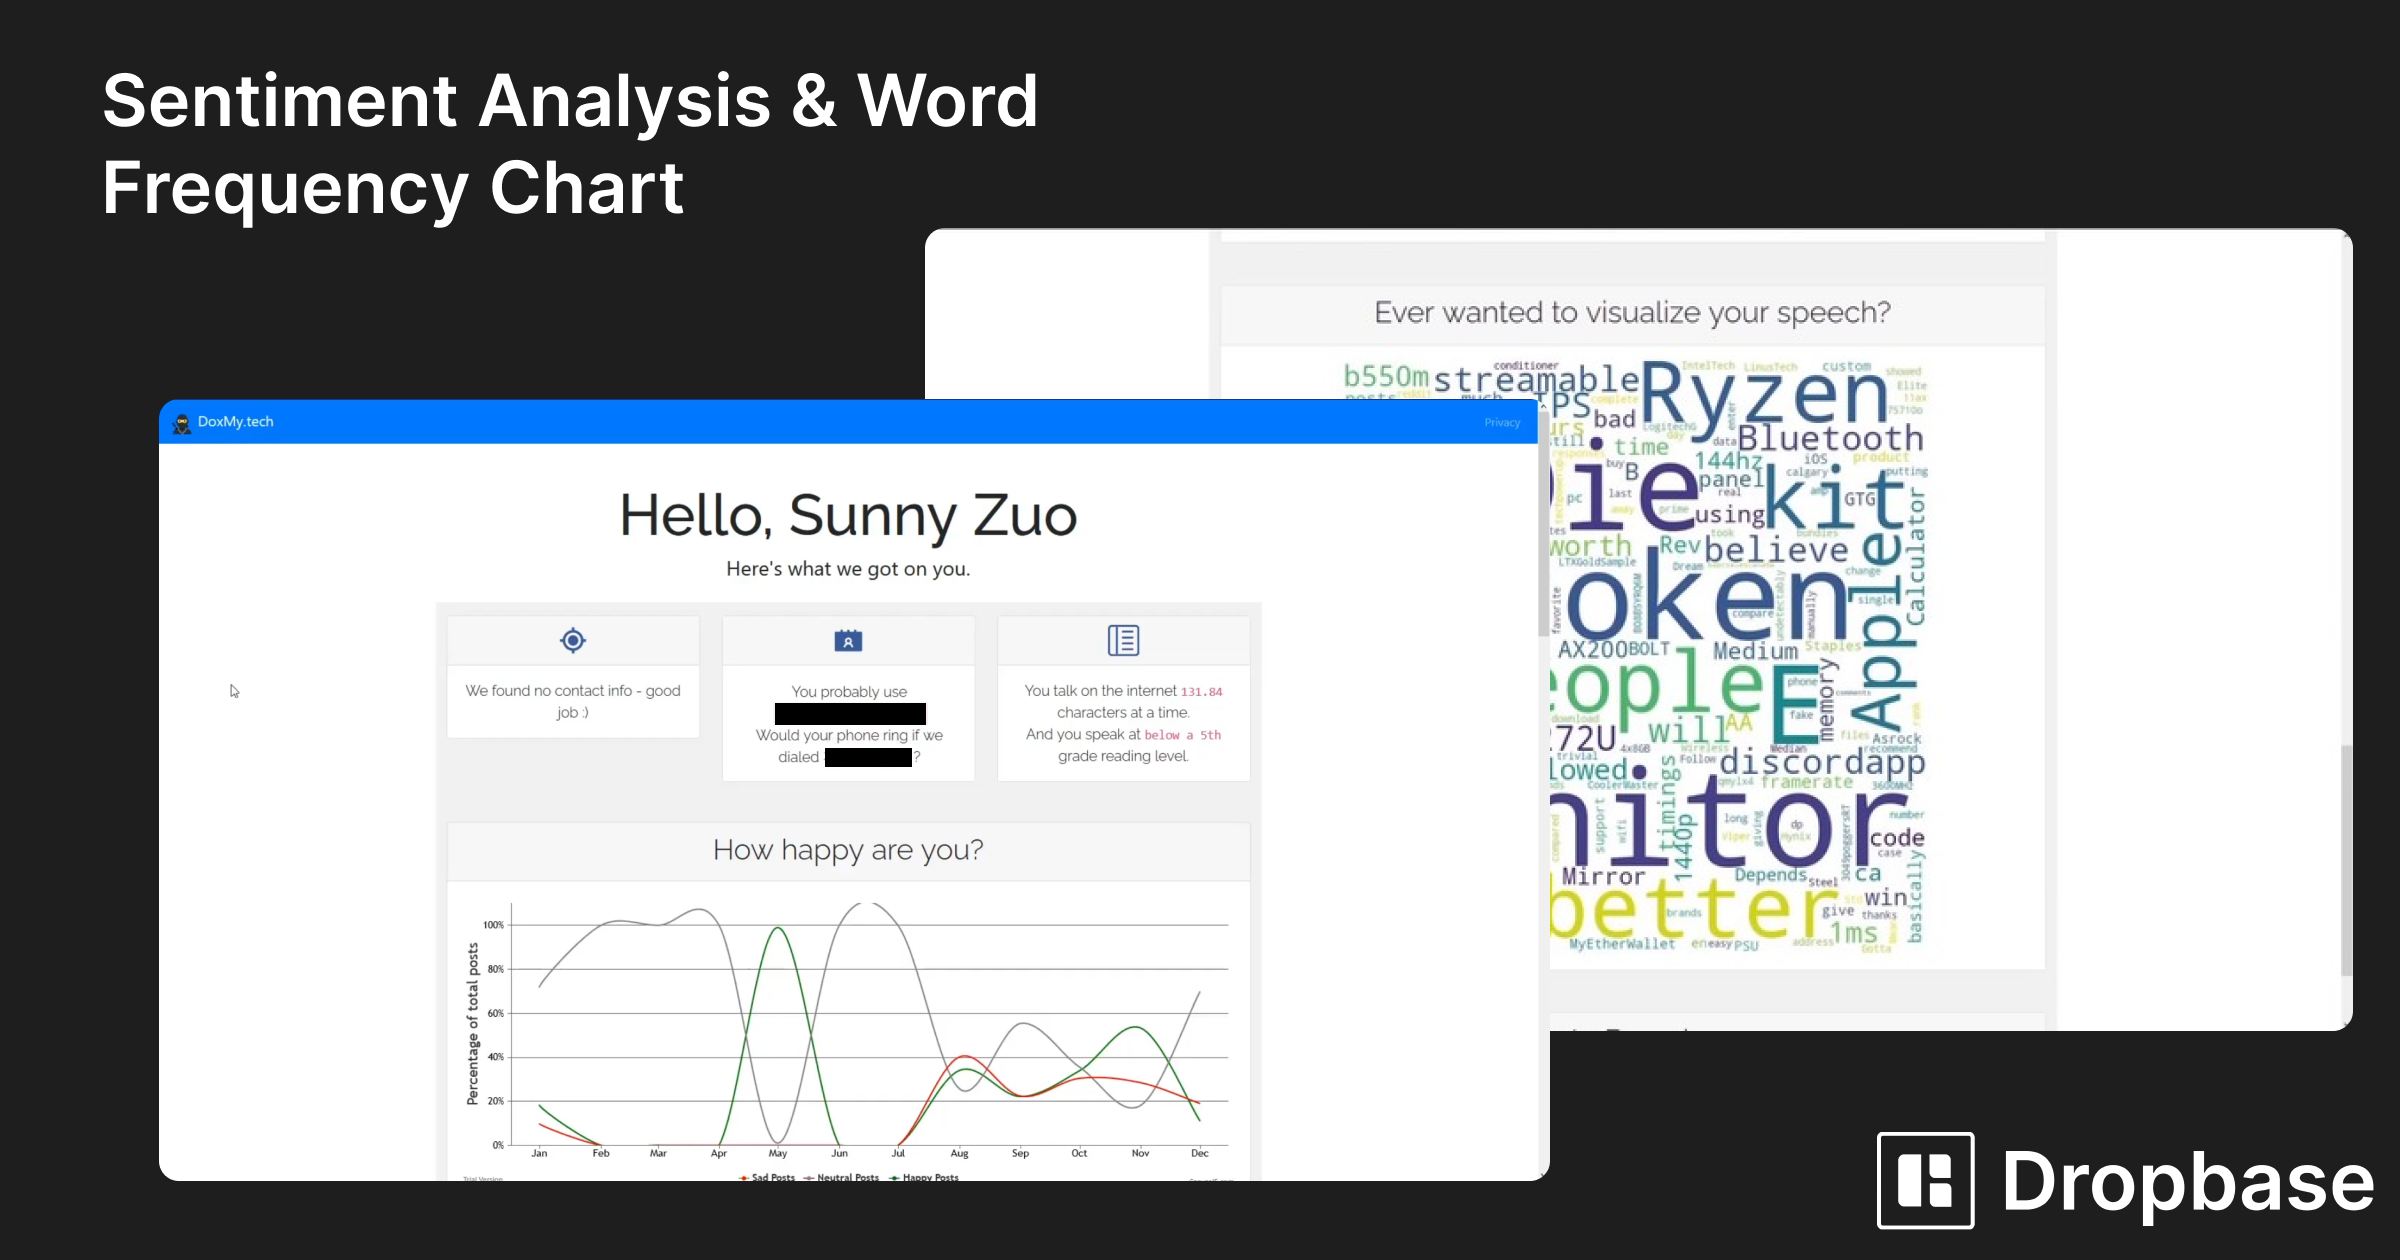 Sentiment analysis and word frequencies